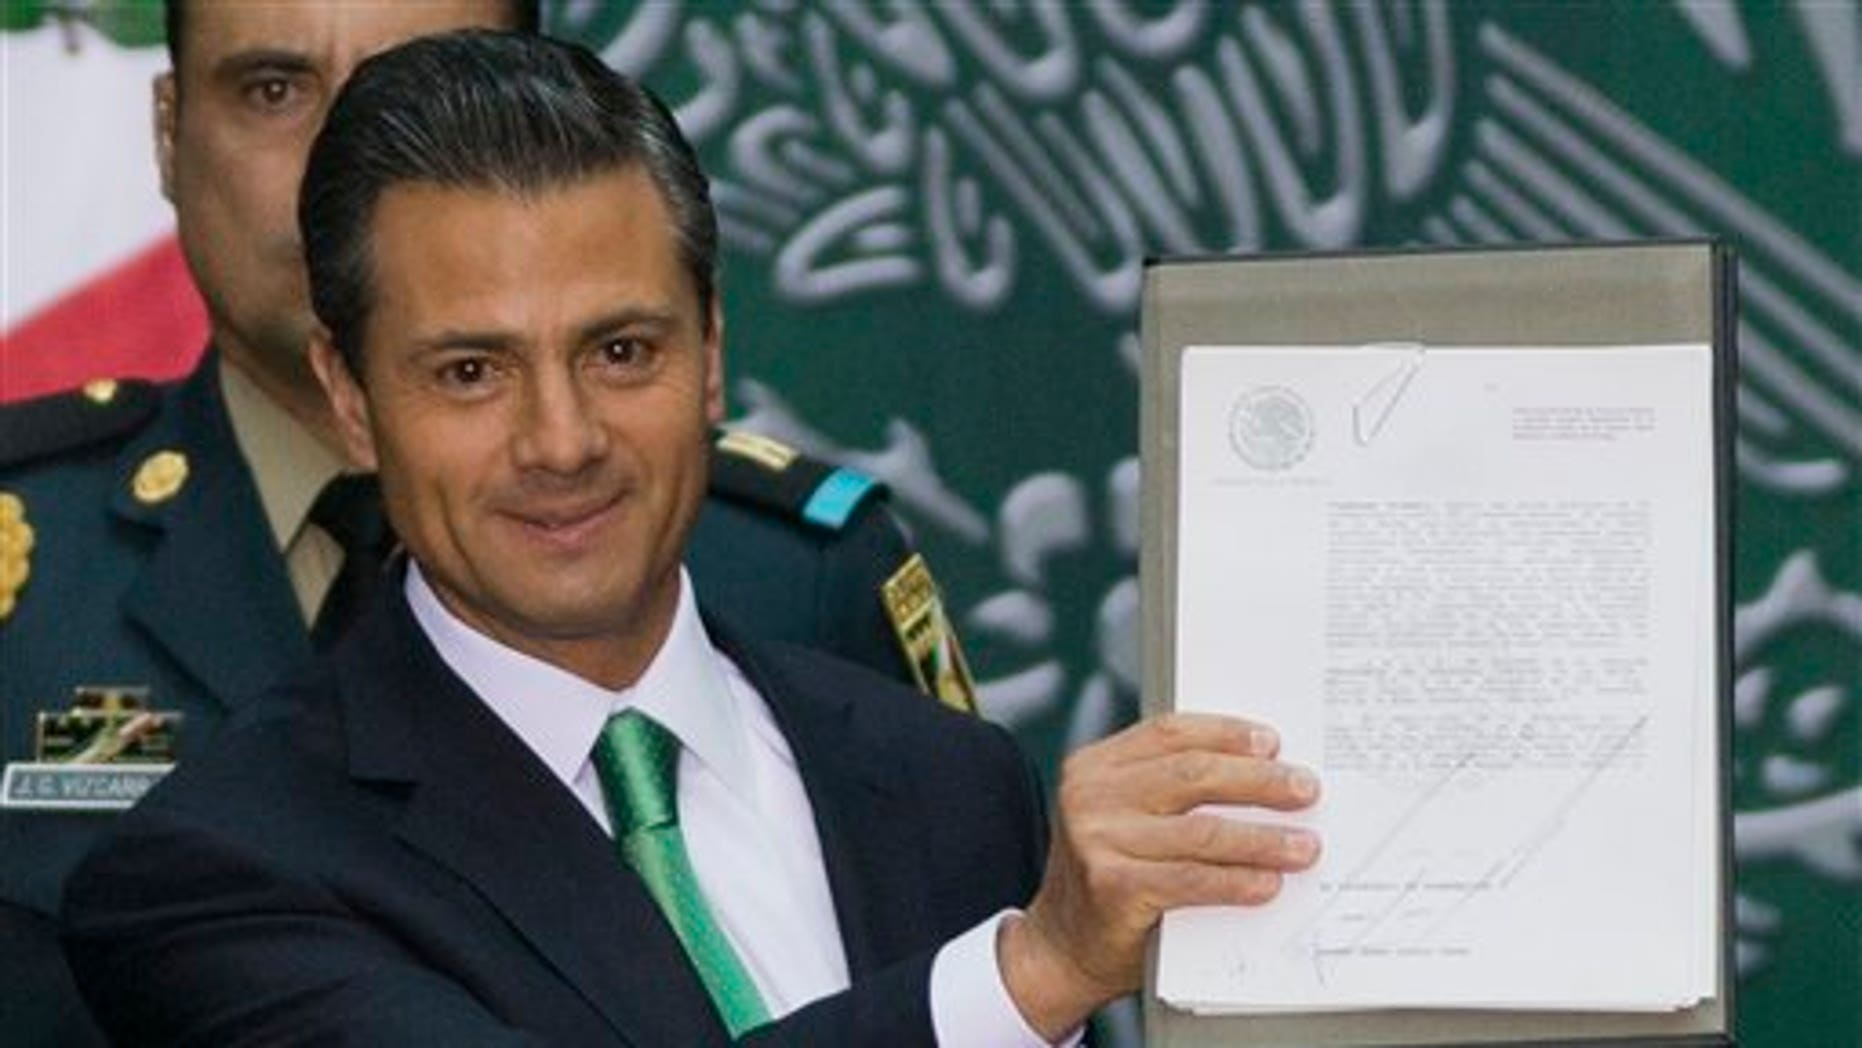 Mexico's President Enrique Pena Nieto holds up the documents he signed to enact his proposed energy reforms at the National Palace in Mexico City, Friday, Dec. 20, 2013. The sweeping reforms approved by state legislators allow private companies to explore for and produce oil and gas, capping a remarkable series of legislative victories by the Mexican leader. (AP Photo/Eduardo Verdugo)